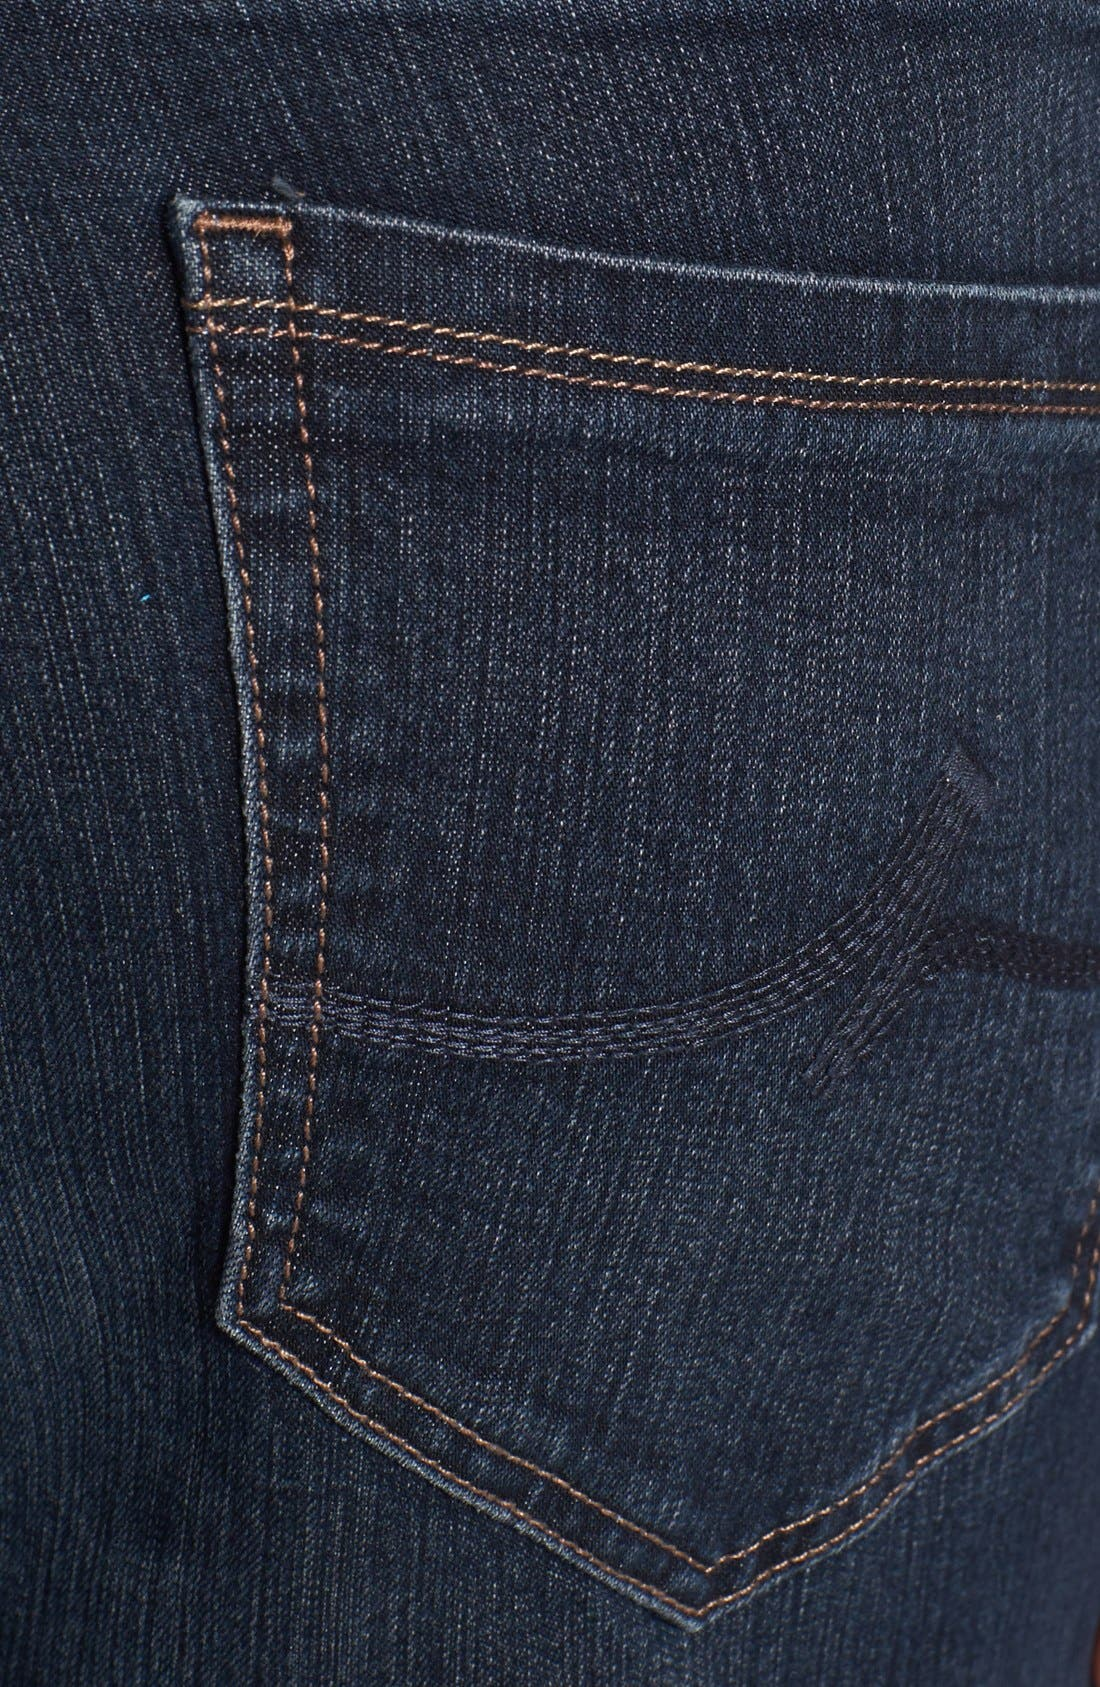 Charisma Relaxed Fit Jeans,                             Alternate thumbnail 3, color,                             DARK COMFORT